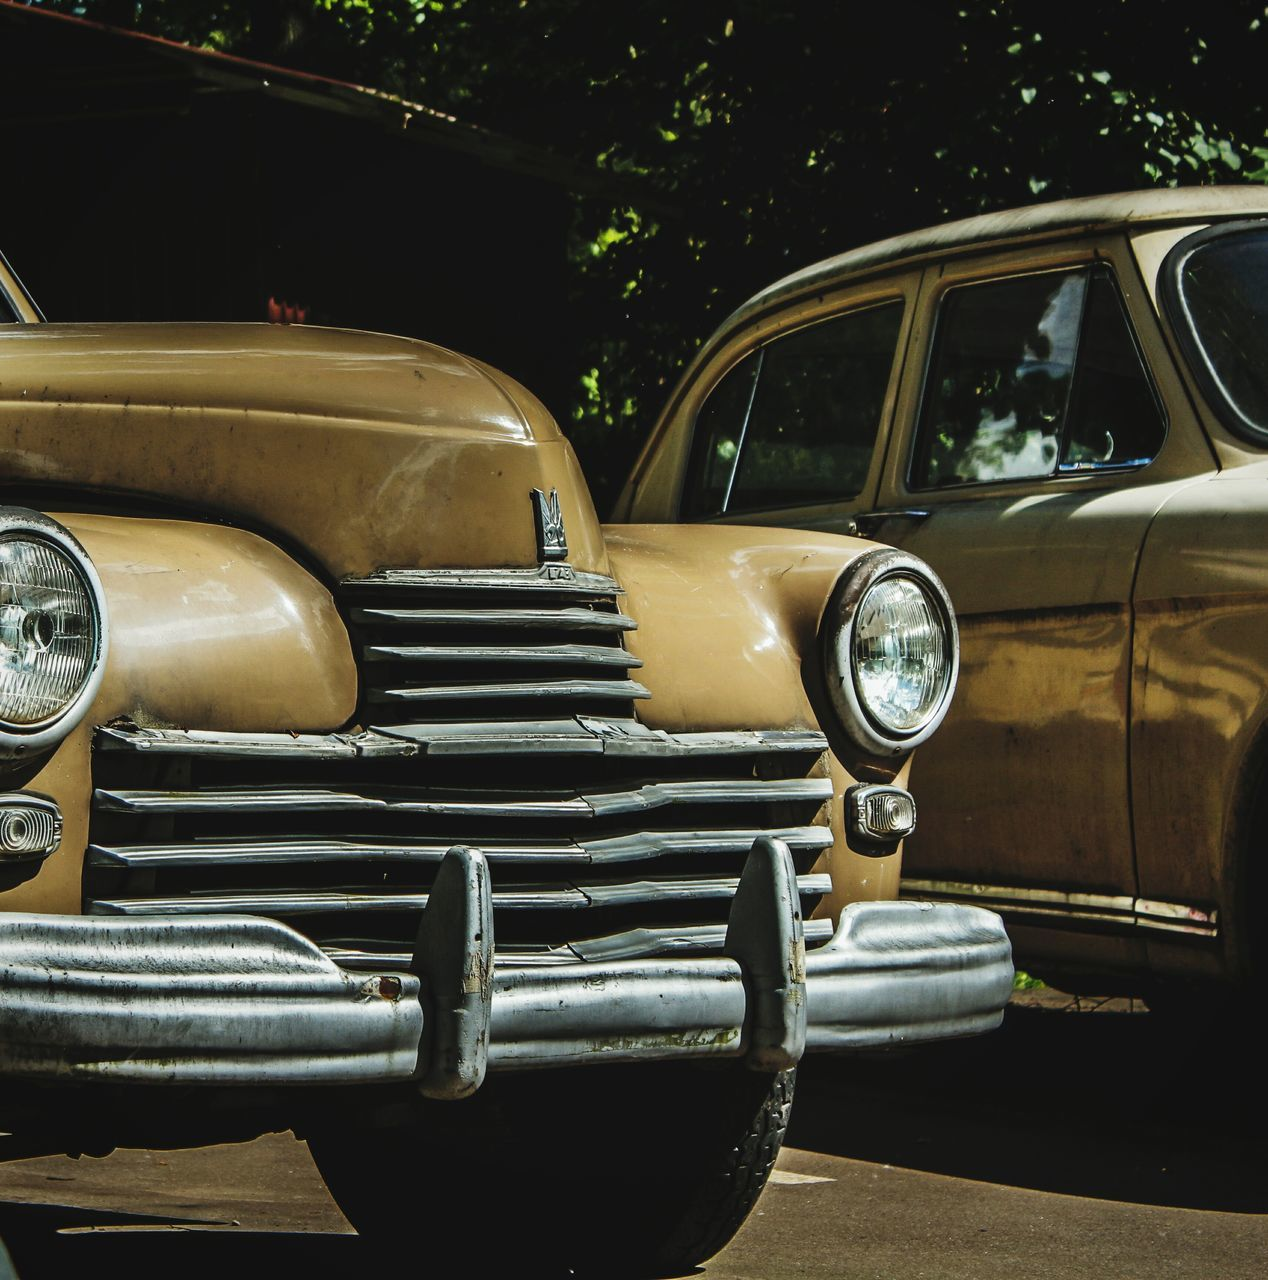 headlight, car, transportation, mode of transport, outdoors, vintage, day, no people